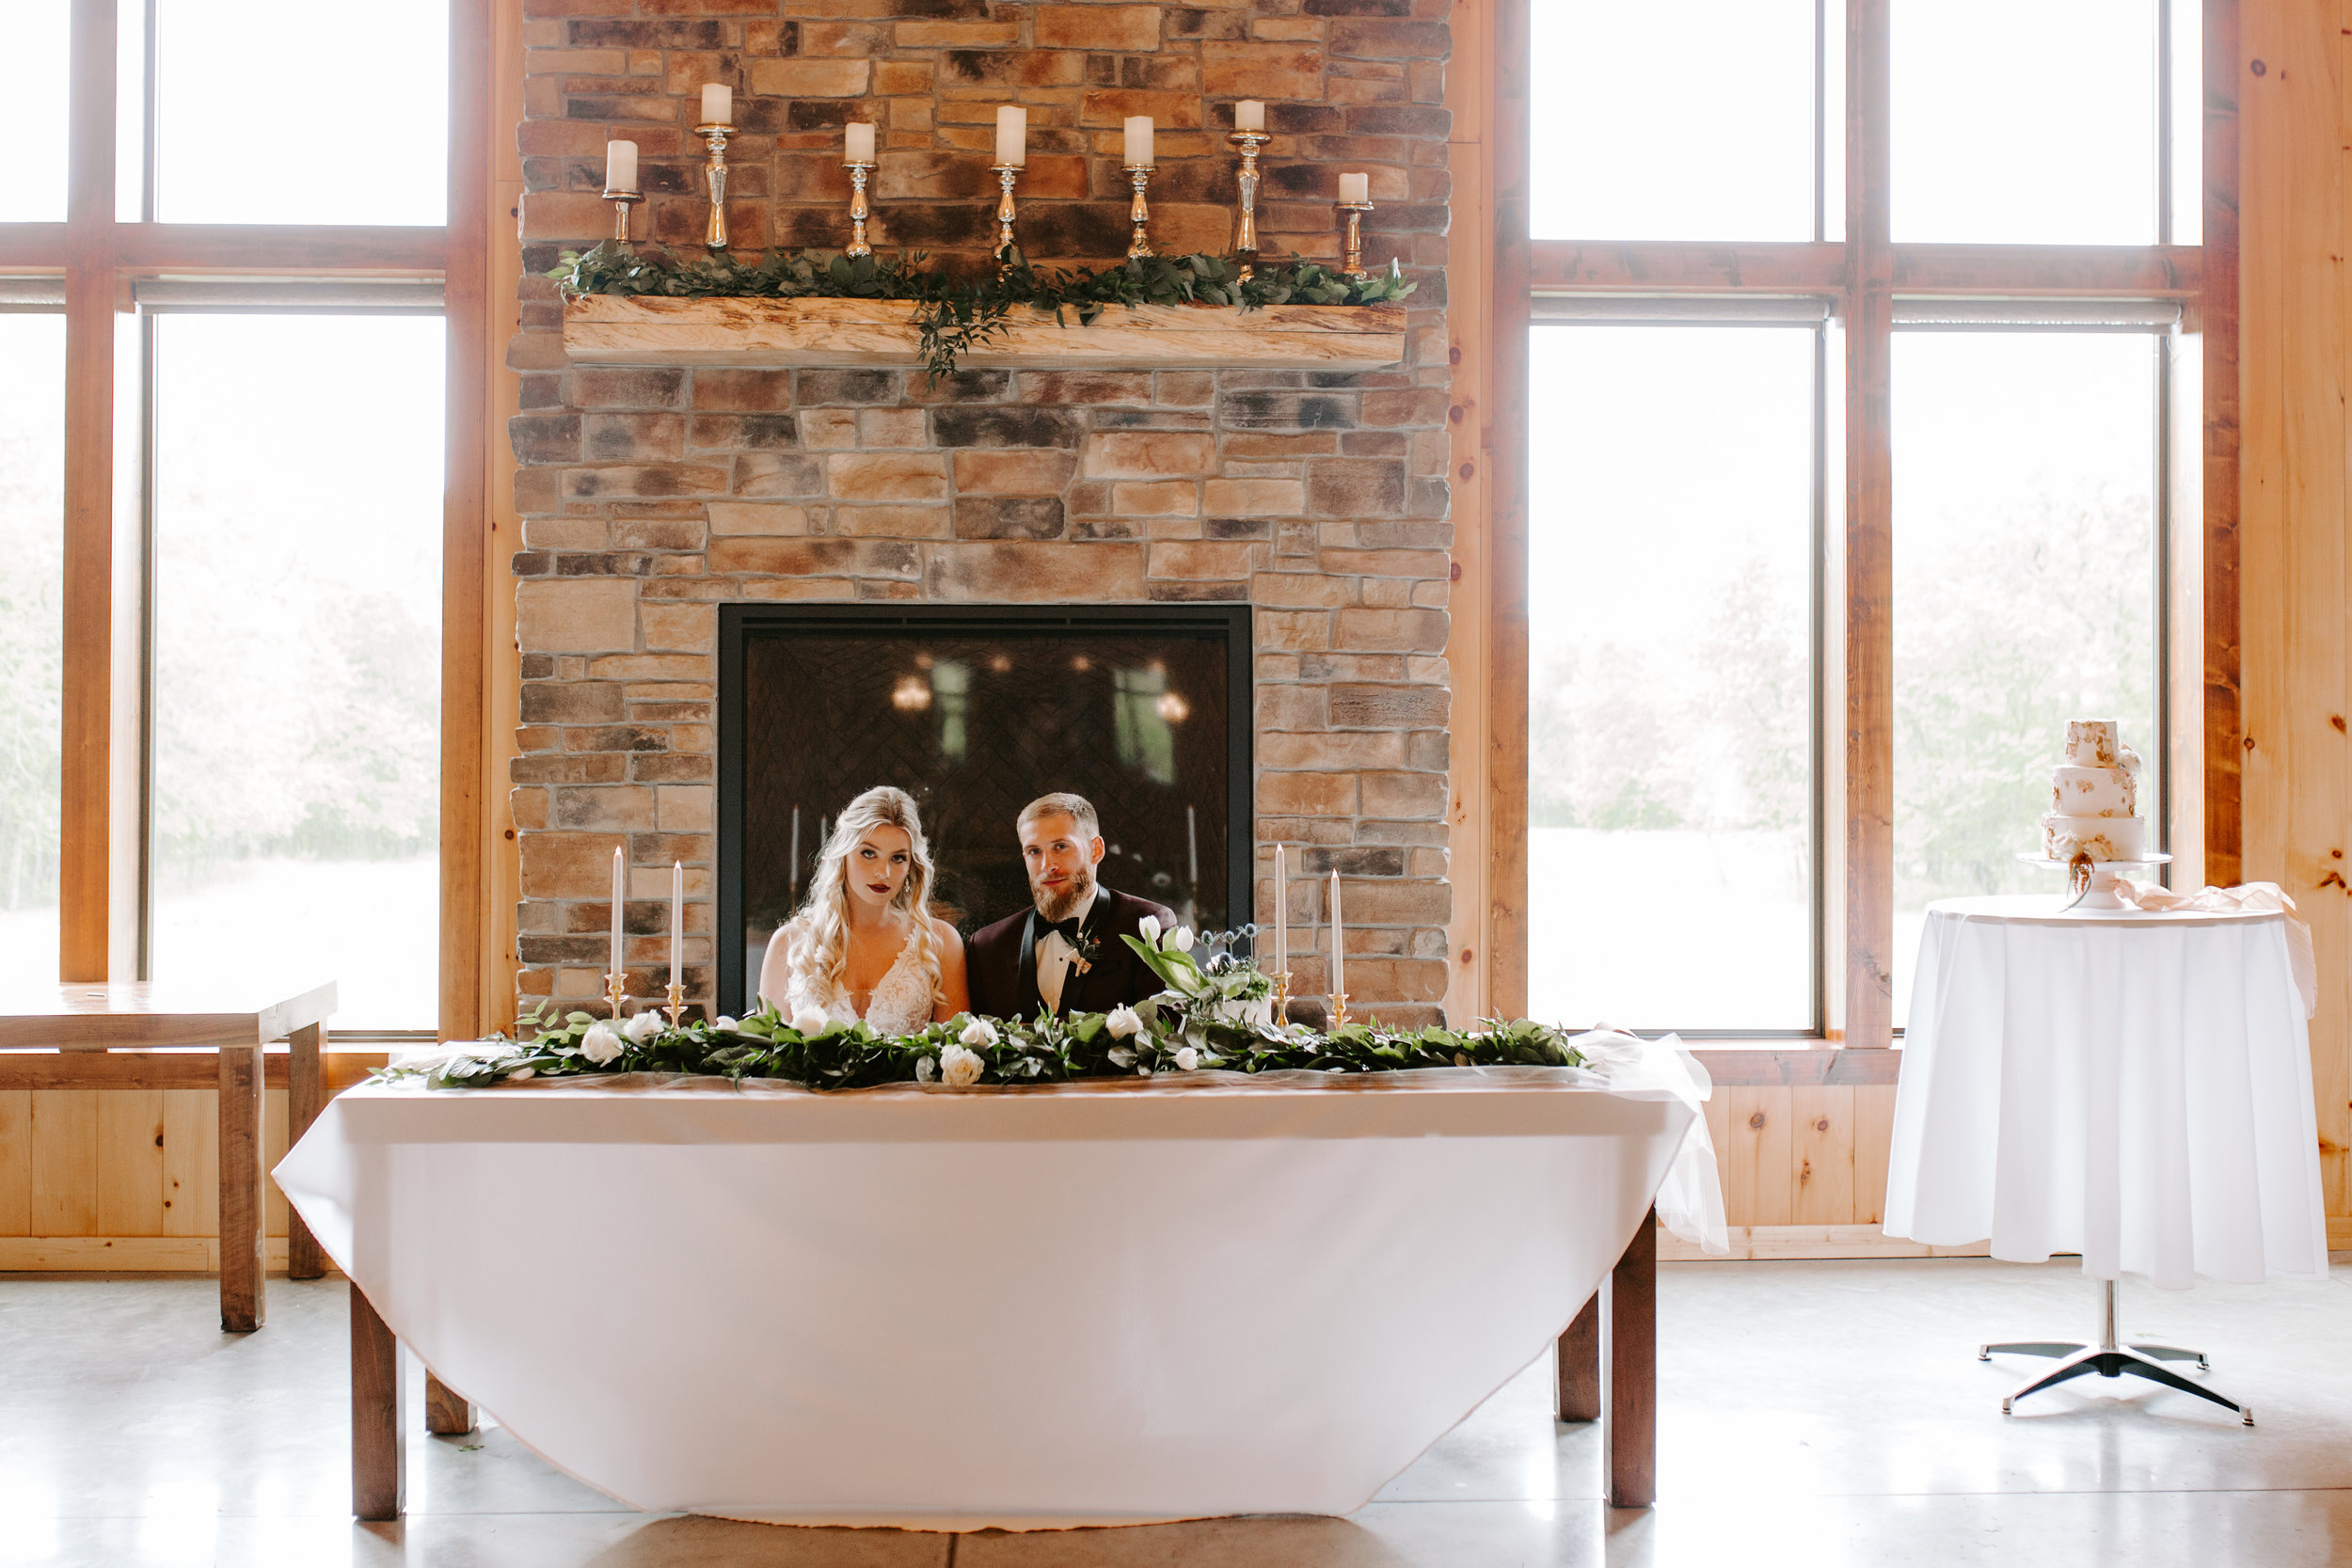 bride and grrom sit at kings table in front of stone fireplace at iowa wedding venue with rustic barn look